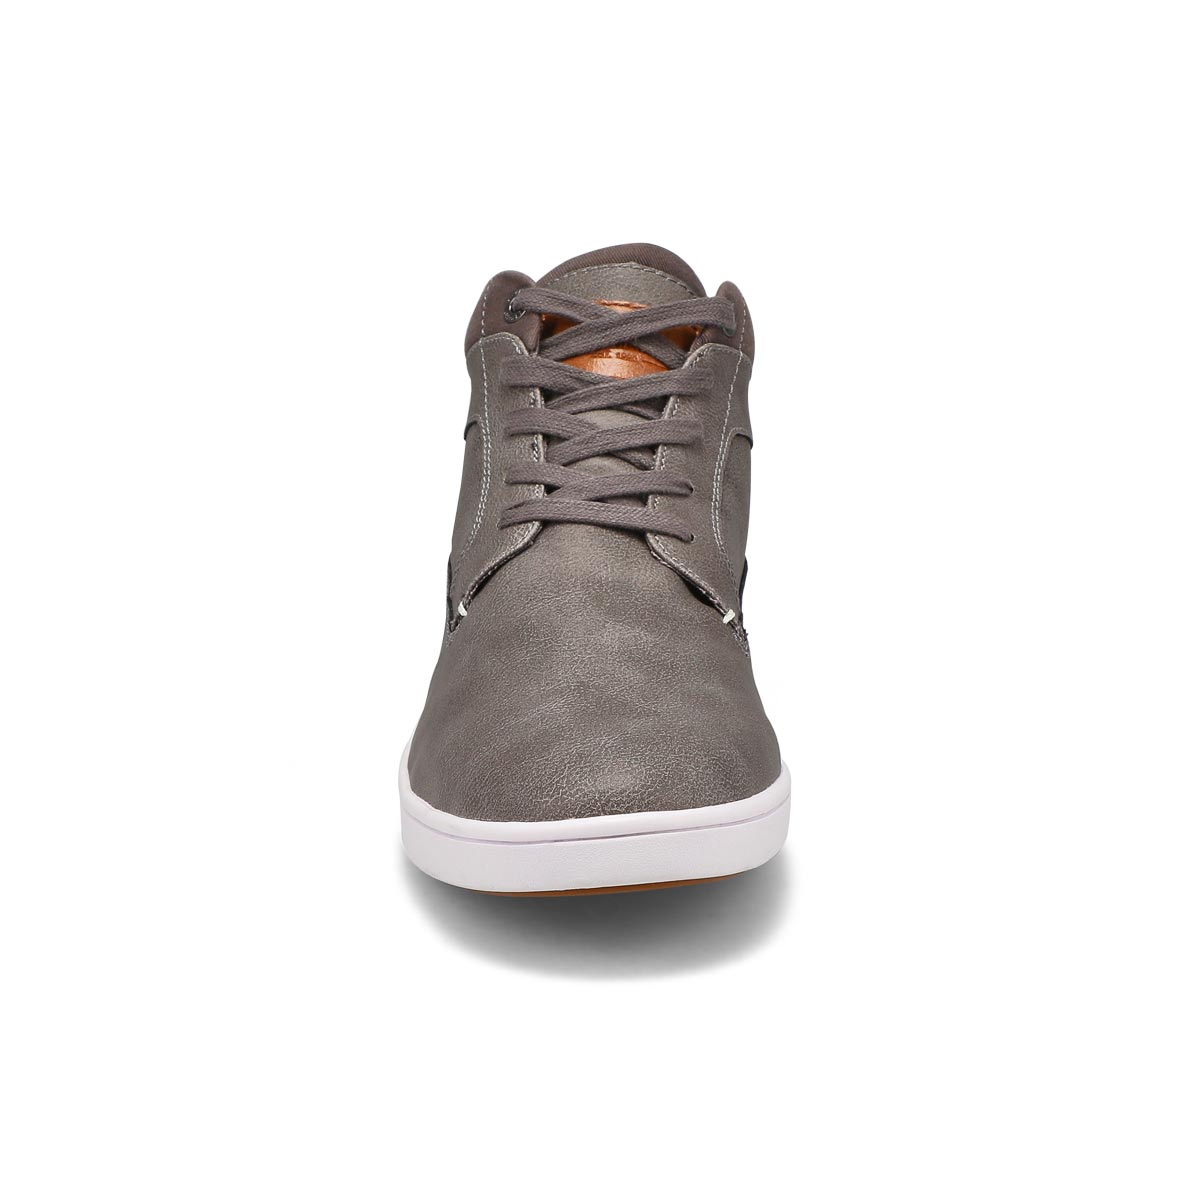 Mns Fyre grey lace up ankle boot